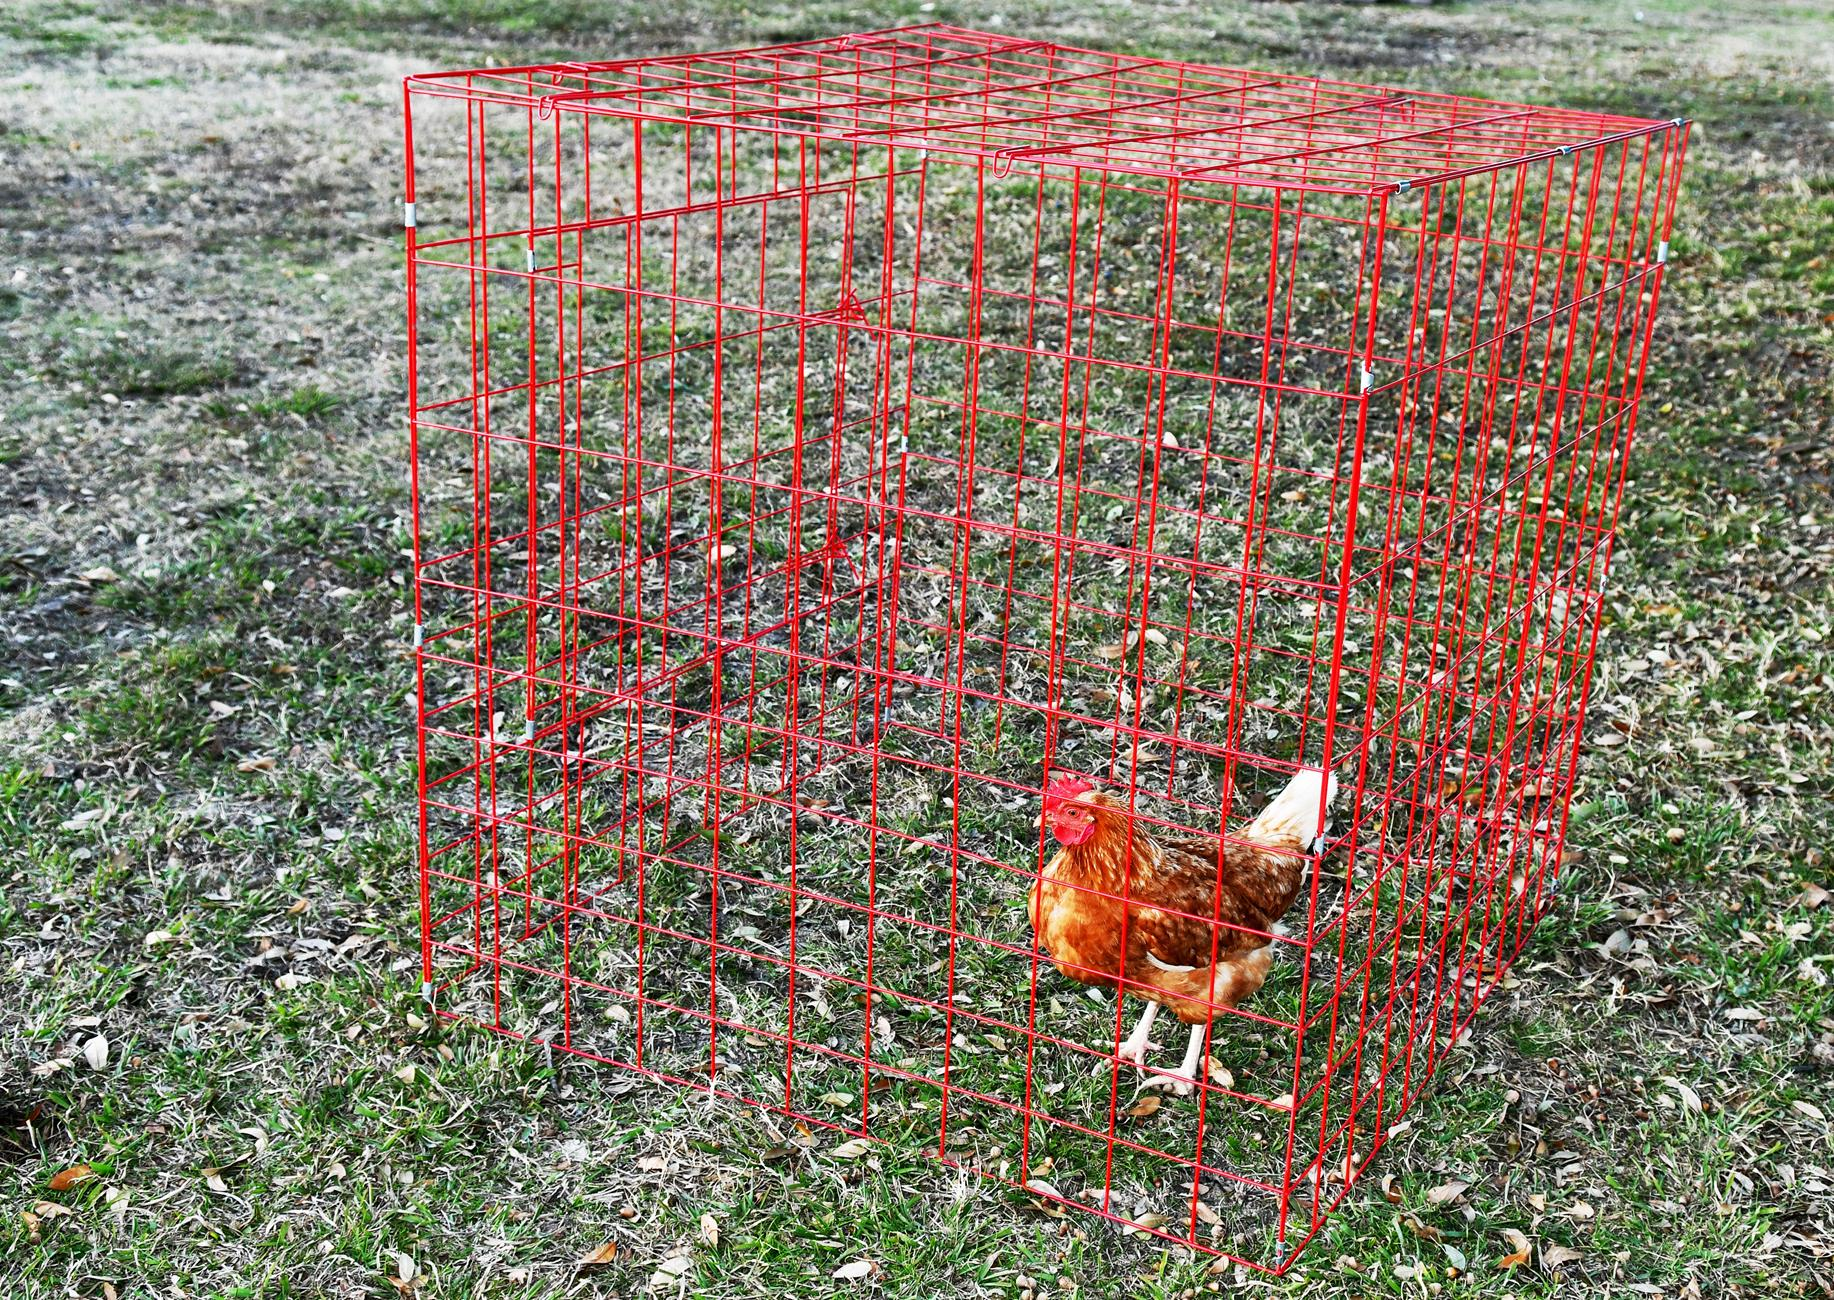 5 Pack Red Galvanized Metal Square Chicken Coop Breeding Cage Drop